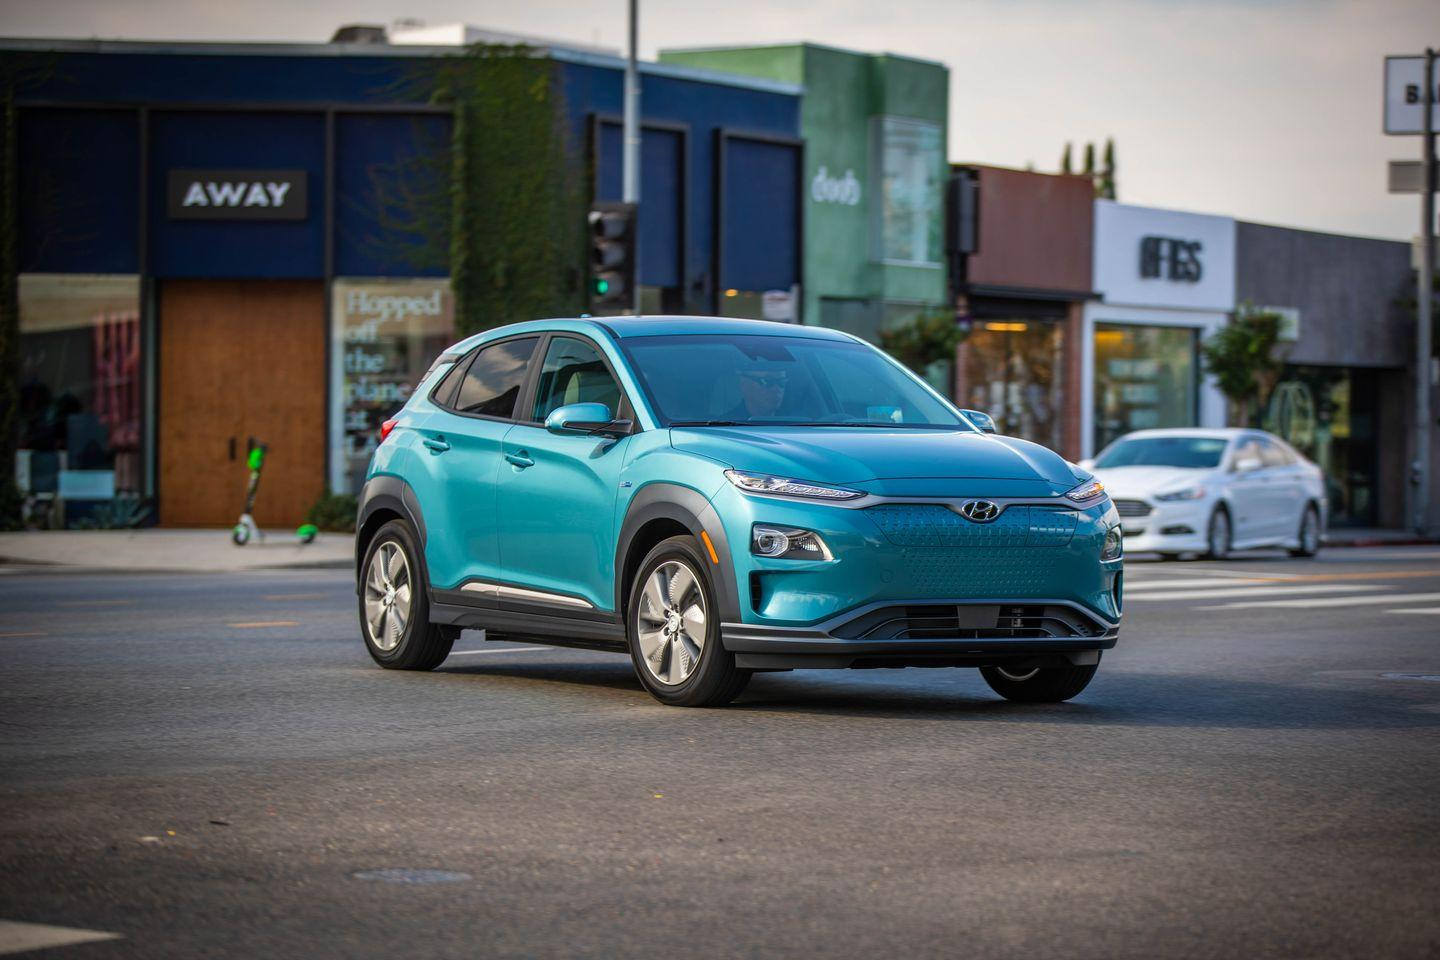 "<p>Its long driving range and spunky driving personality make the <a href=""https://www.caranddriver.com/hyundai/kona-electric"" rel=""nofollow noopener"" target=""_blank"" data-ylk=""slk:2020 Kona Electric"" class=""link rapid-noclick-resp"">2020 Kona Electric</a> one of the best electric vehicles on sale today. It shares its basic structure with the <a href=""https://www.caranddriver.com/hyundai/kona"" rel=""nofollow noopener"" target=""_blank"" data-ylk=""slk:gasoline-powered Kona SUV"" class=""link rapid-noclick-resp"">gasoline-powered Kona SUV</a>, but wears a unique front bumper, grille, and special wheels that all look cool and also help reduce aerodynamic drag. The Kona Electric goes head-to-head with other mass-market EVs such as the <a href=""https://www.caranddriver.com/chevrolet/bolt-ev"" rel=""nofollow noopener"" target=""_blank"" data-ylk=""slk:Chevrolet Bolt EV"" class=""link rapid-noclick-resp"">Chevrolet Bolt EV</a>, entry-level models of the <a href=""https://www.caranddriver.com/tesla/model-3"" rel=""nofollow noopener"" target=""_blank"" data-ylk=""slk:Tesla Model 3"" class=""link rapid-noclick-resp"">Tesla Model 3</a>, and the <a href=""https://www.caranddriver.com/kia/niro"" rel=""nofollow noopener"" target=""_blank"" data-ylk=""slk:Kia Niro EV"" class=""link rapid-noclick-resp"">Kia Niro EV</a>, but we think it's the best value among its rivals. <a href=""https://www.caranddriver.com/hyundai"" rel=""nofollow noopener"" target=""_blank"" data-ylk=""slk:Hyundai"" class=""link rapid-noclick-resp"">Hyundai</a> claims a driving range of up to 258 miles per charge and the Kona Electric can recharge its battery fairly quickly on a 240-volt outlet or even quicker using a DC fast-charging station. </p><p><a class=""link rapid-noclick-resp"" href=""https://www.caranddriver.com/hyundai/kona-electric"" rel=""nofollow noopener"" target=""_blank"" data-ylk=""slk:Review, Pricing, and Specs"">Review, Pricing, and Specs</a></p>"